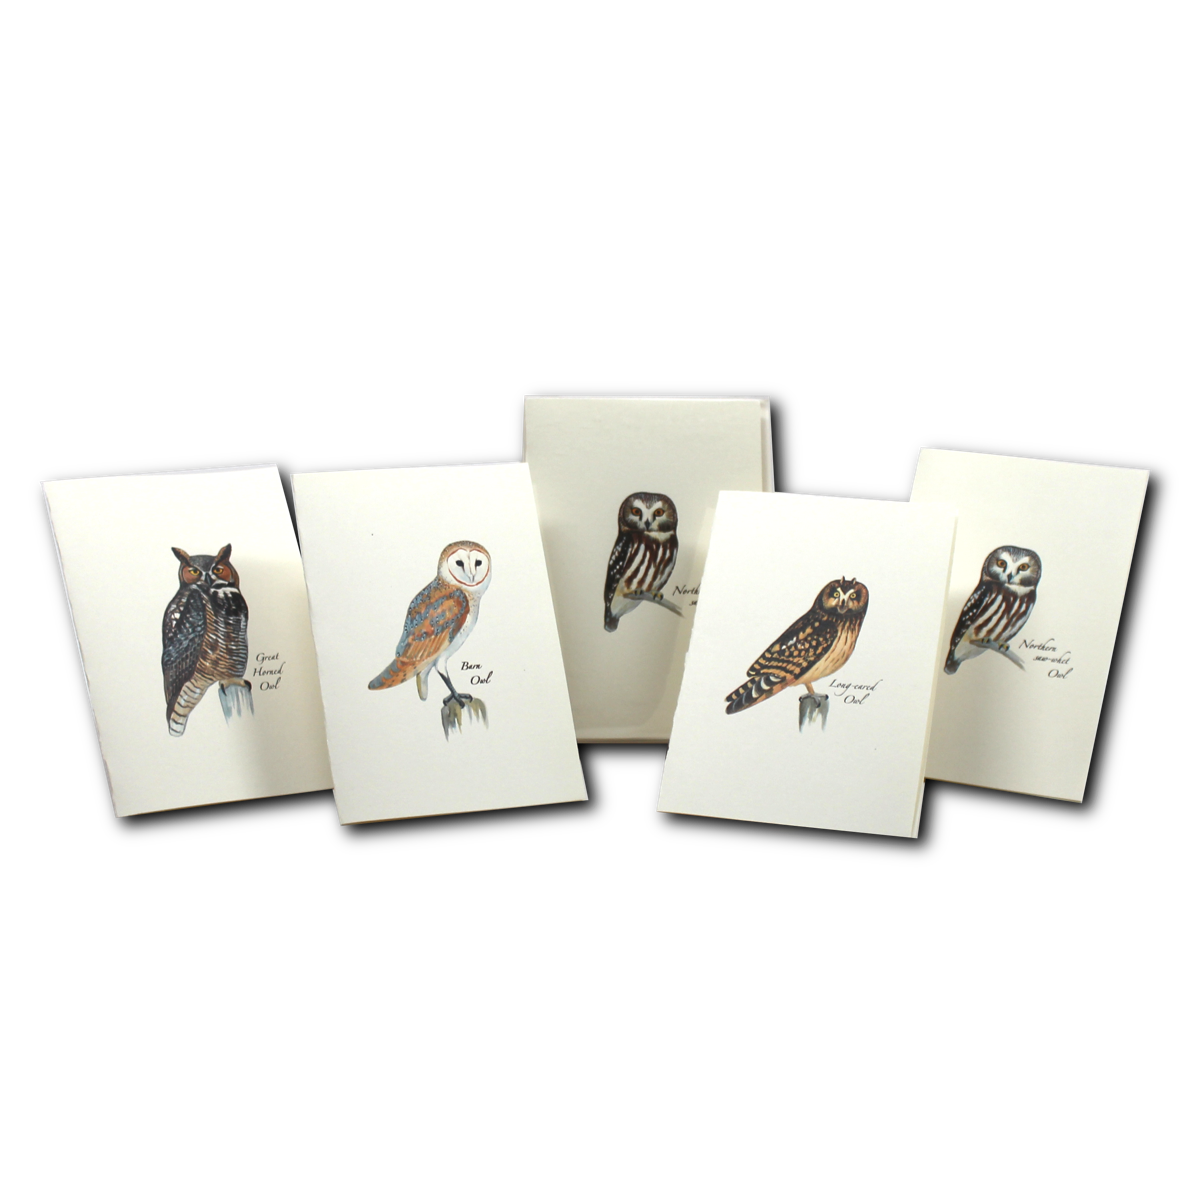 Boxed Notecard Assortment Sibley Owl Set of 8